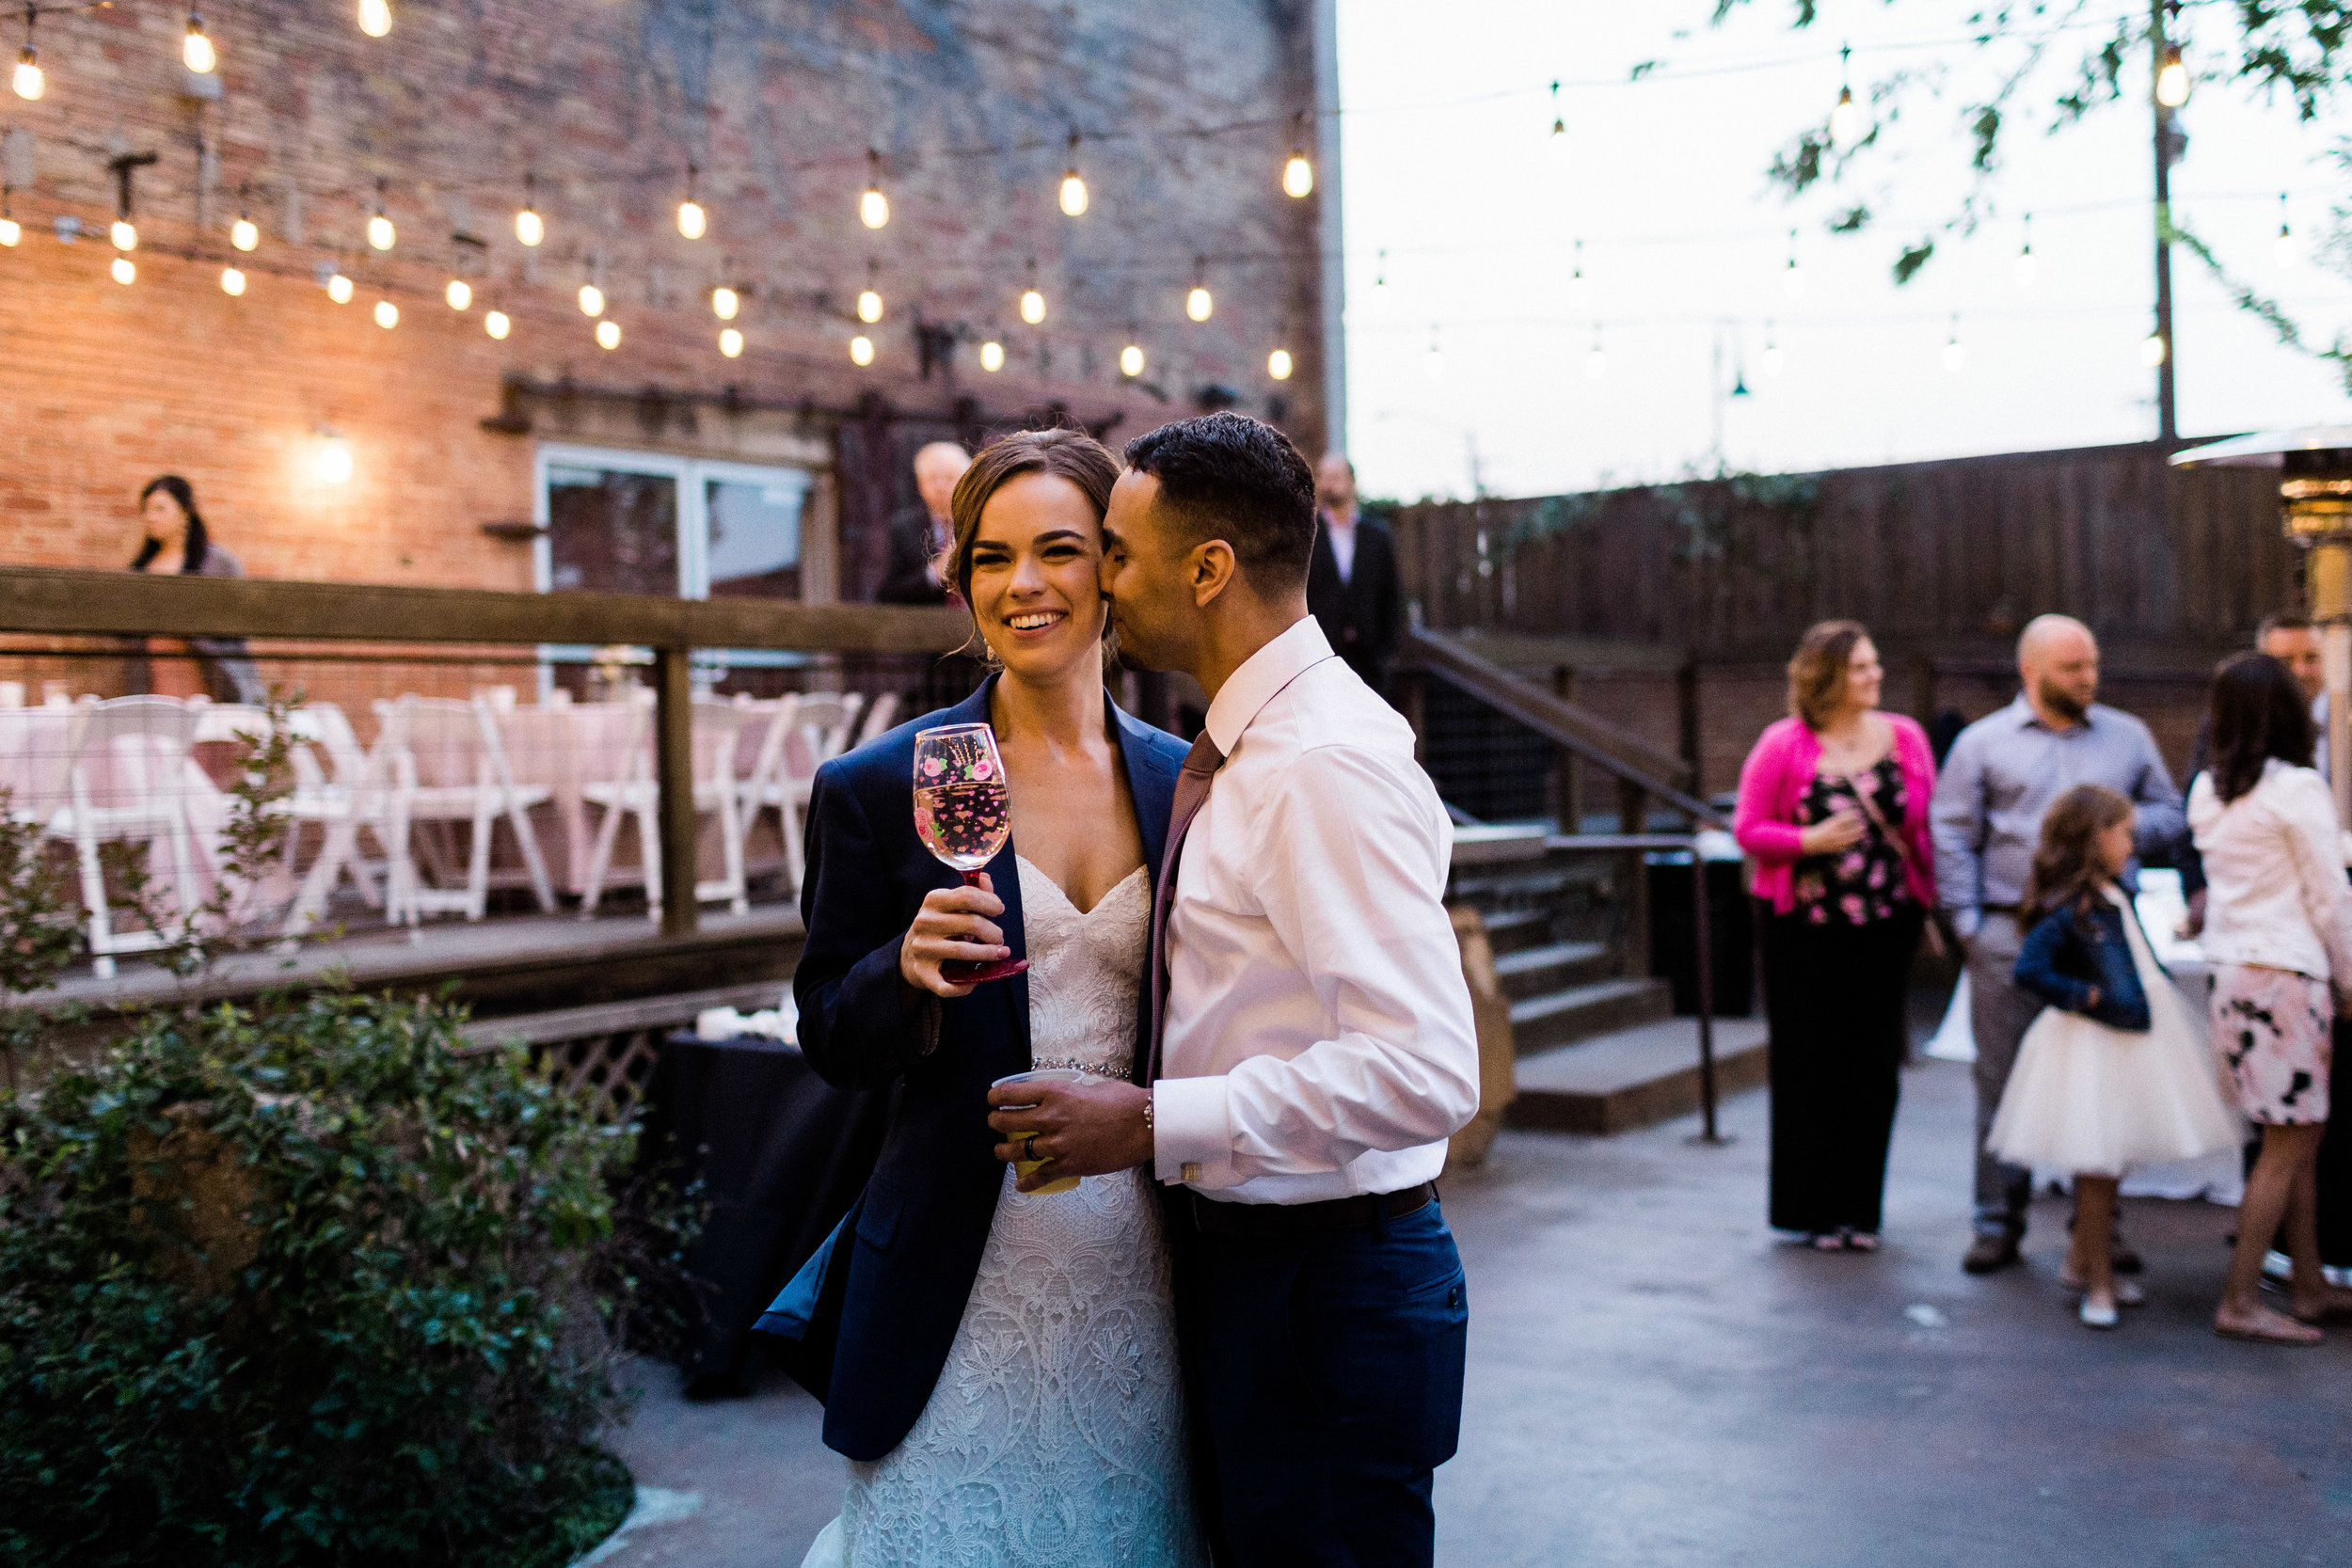 Wedding Reception at Outdoor Wedding in Fort Worth Texas at Artspace 111